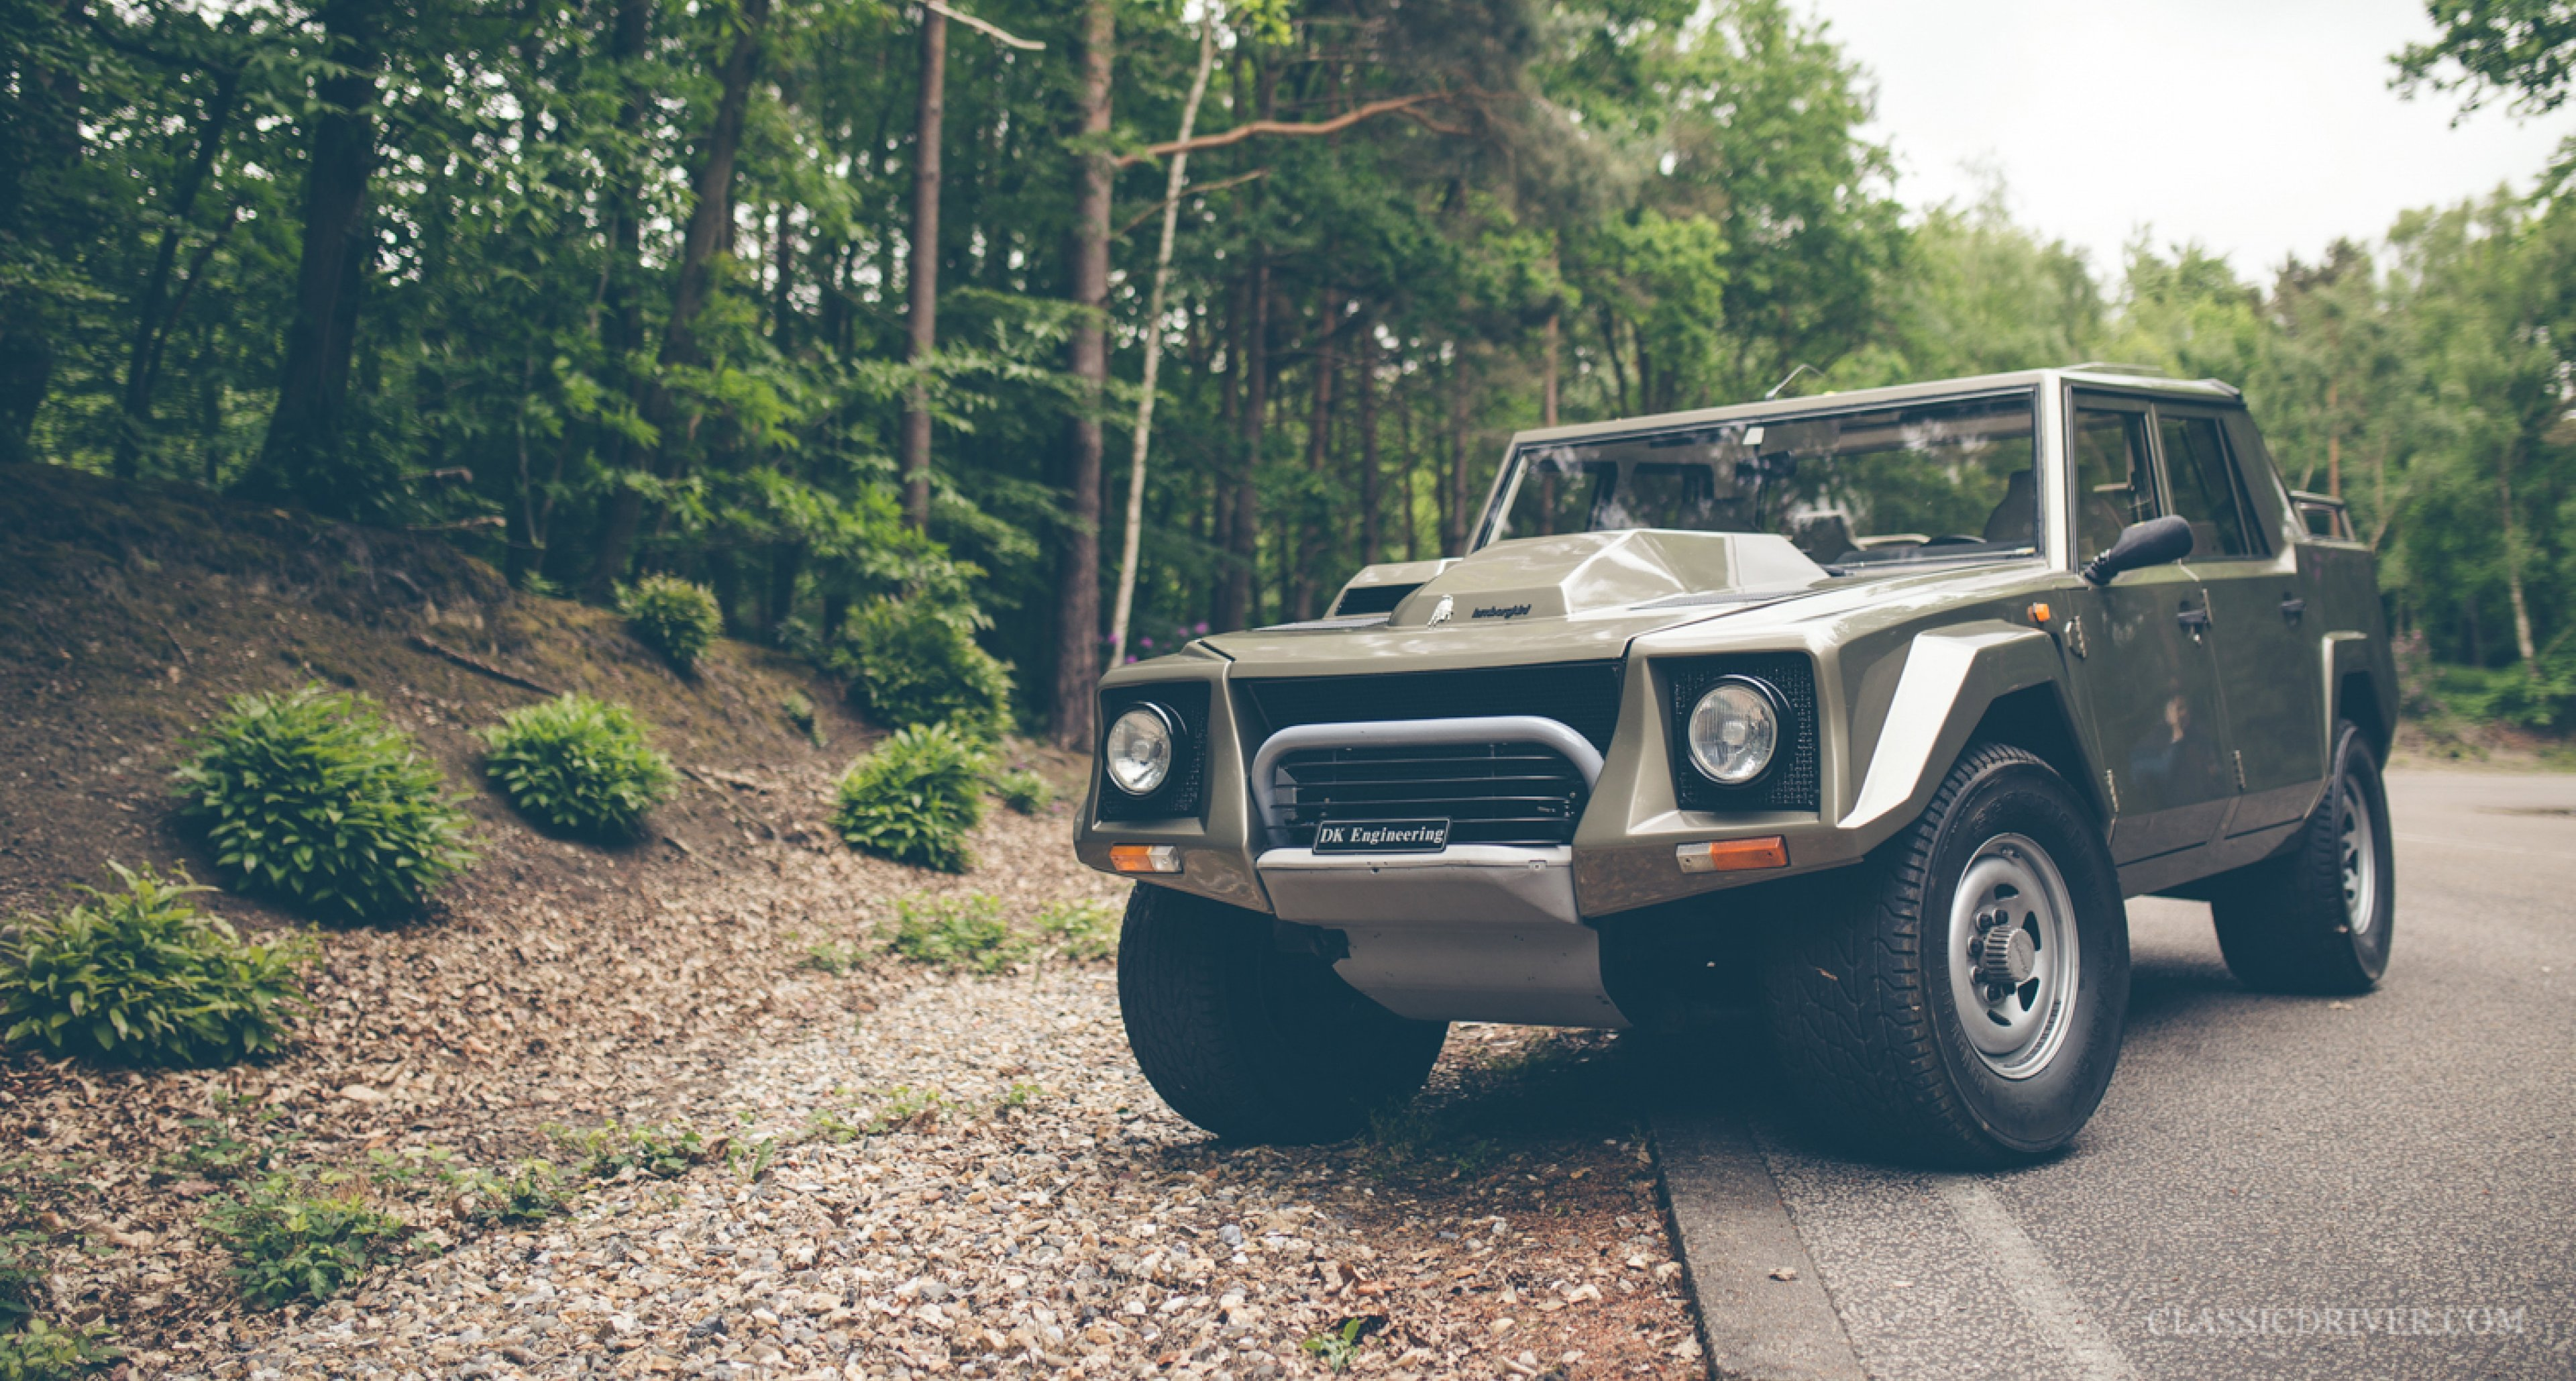 Hummer vs Rambo Lambo – Pumping iron with the last 4X4 action heroes |  Classic Driver Magazine